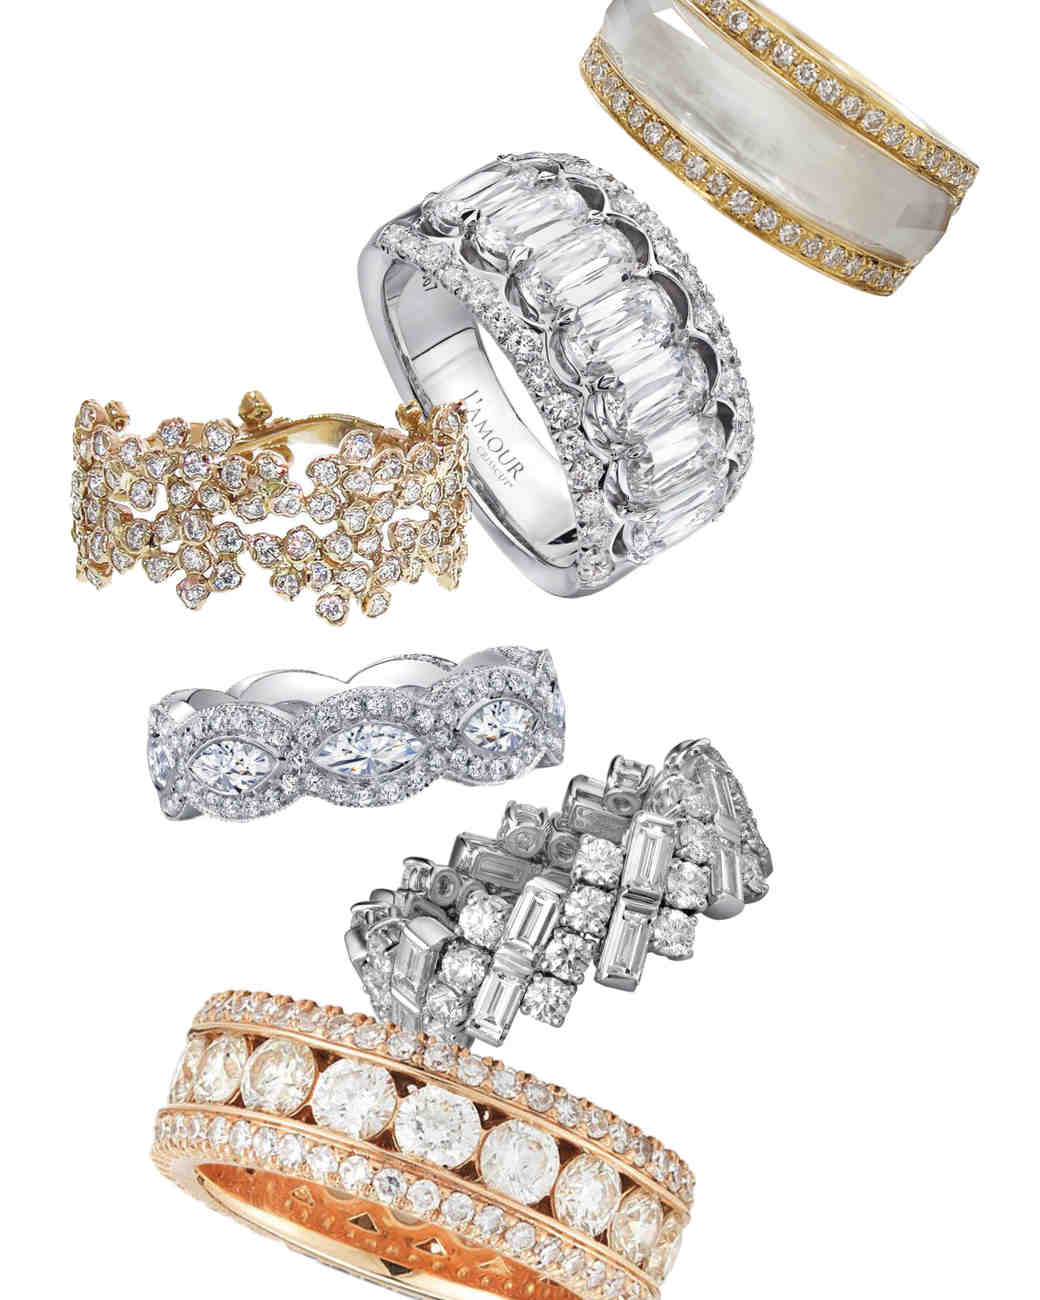 rows diamond angeles los ambar band blaze wedding wide bands bez eternity rings three